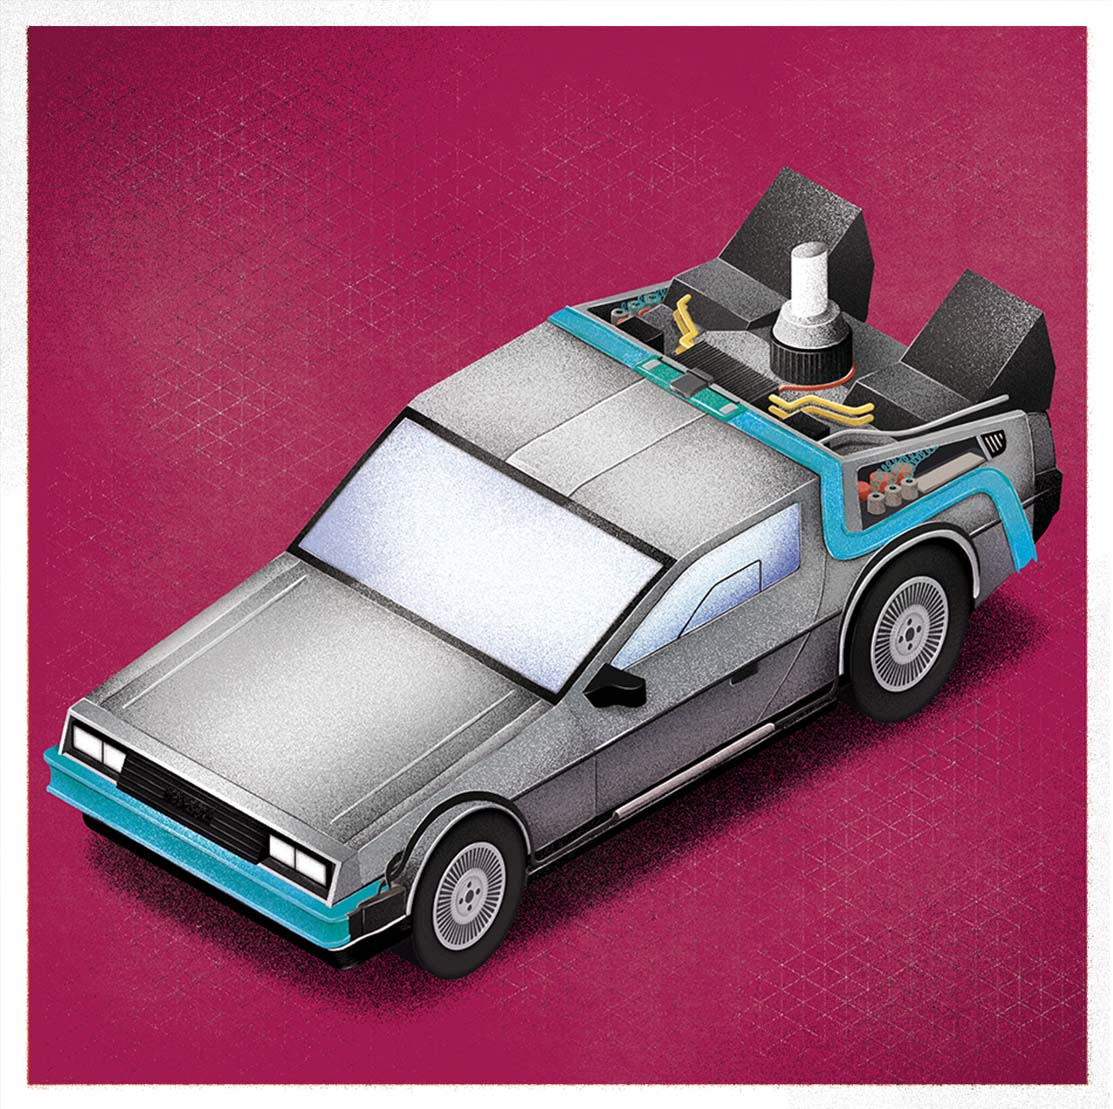 Delorean Regreso al futuro Back to the Future